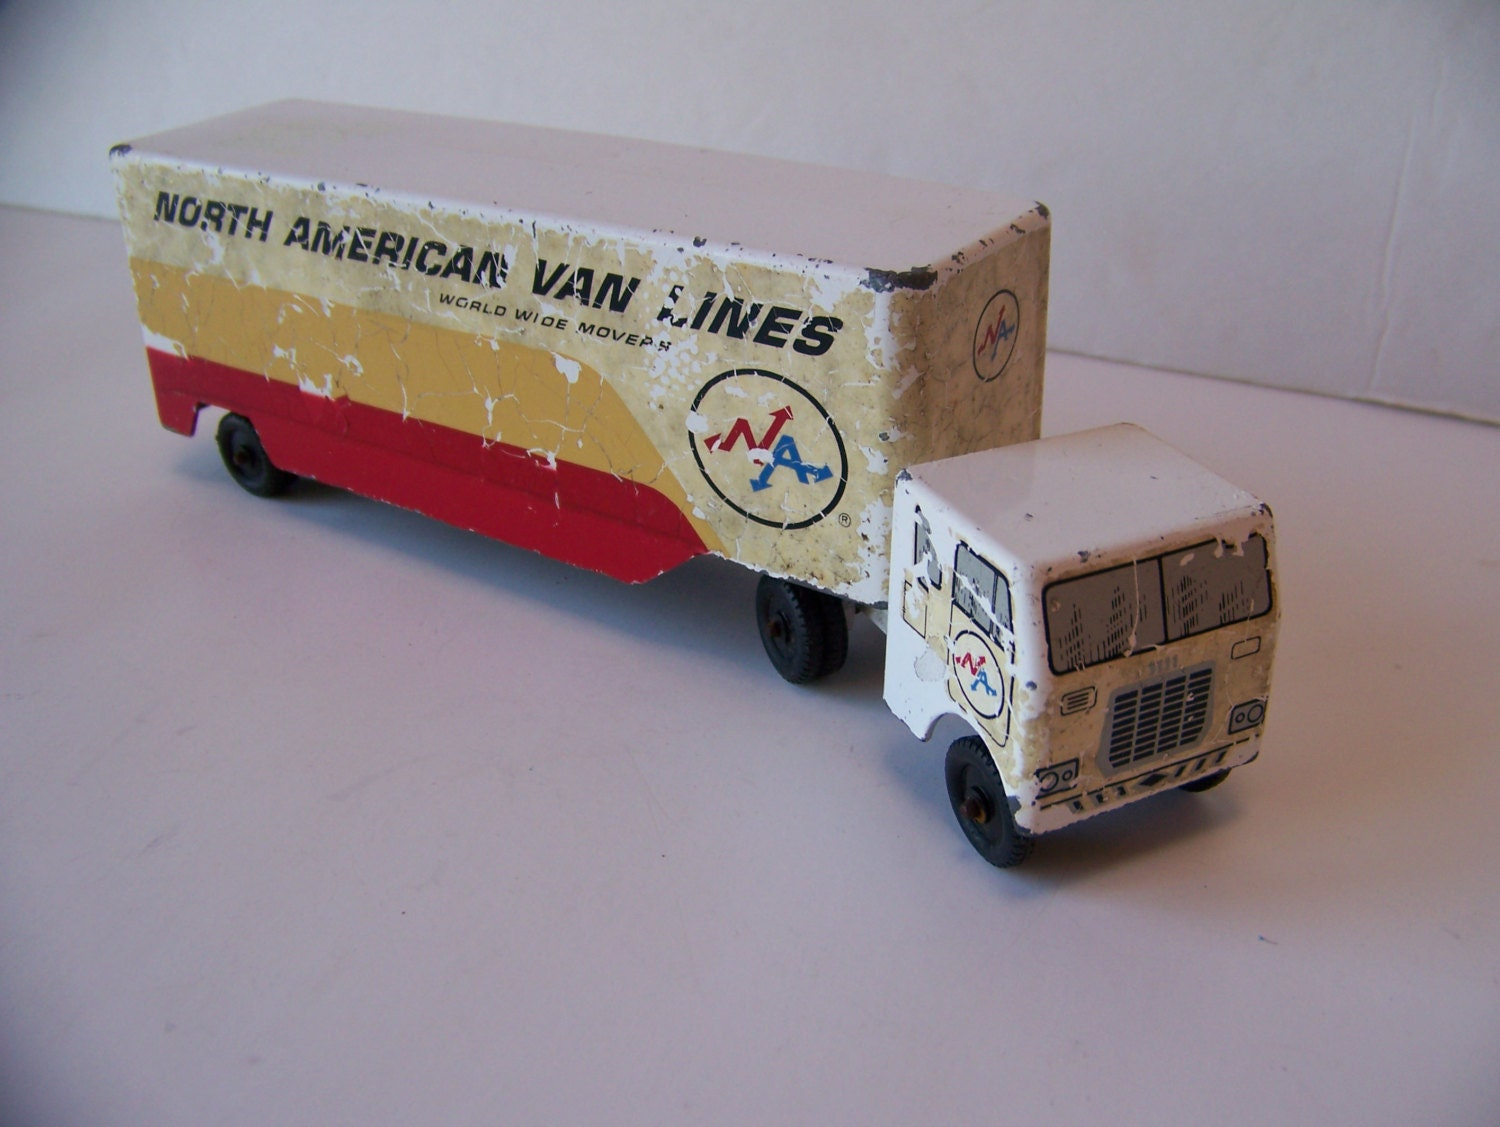 Toy Moving Truck Vintage North American Van Lines Truck Fort Wayne